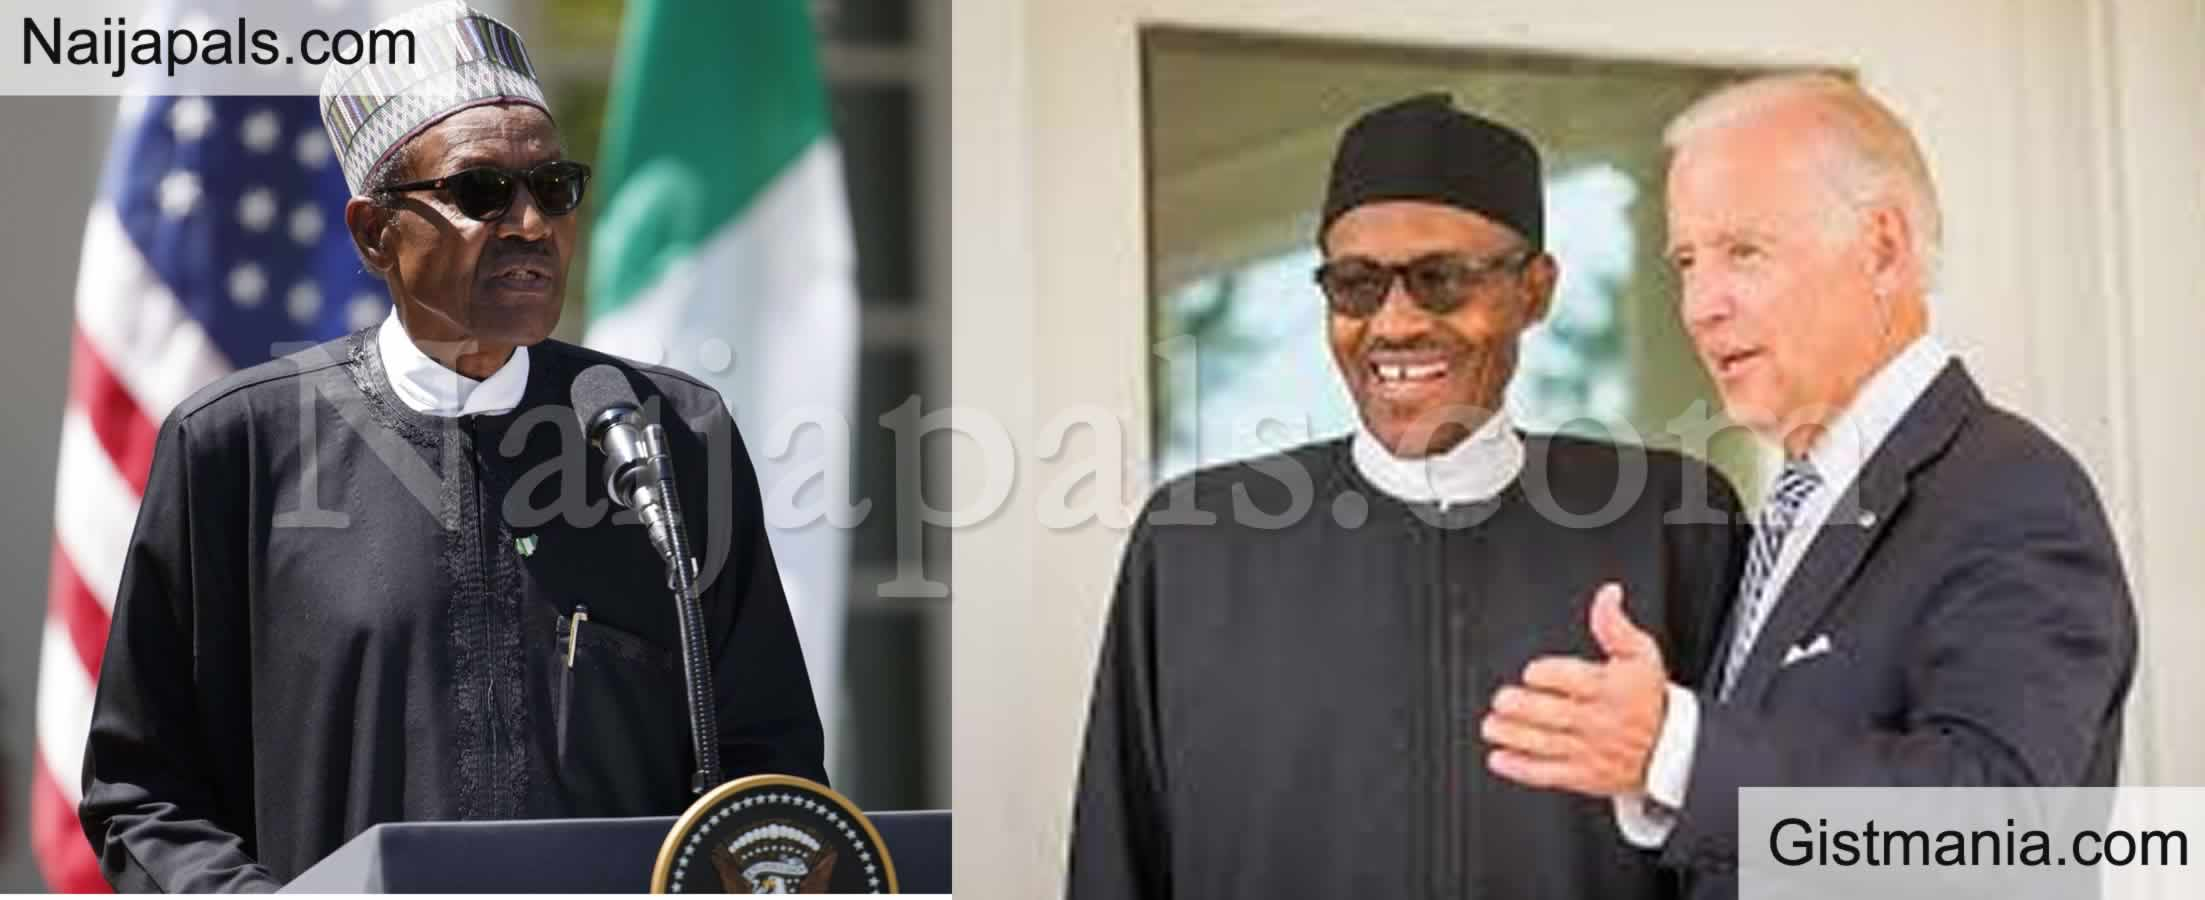 "<img alt='.' class='lazyload' data-src='https://img.gistmania.com/emot/comment.gif' /> <b>""We're Looking Forward To Working With Joe Biden And Kamala Harris""</b> - President Buhari Says"